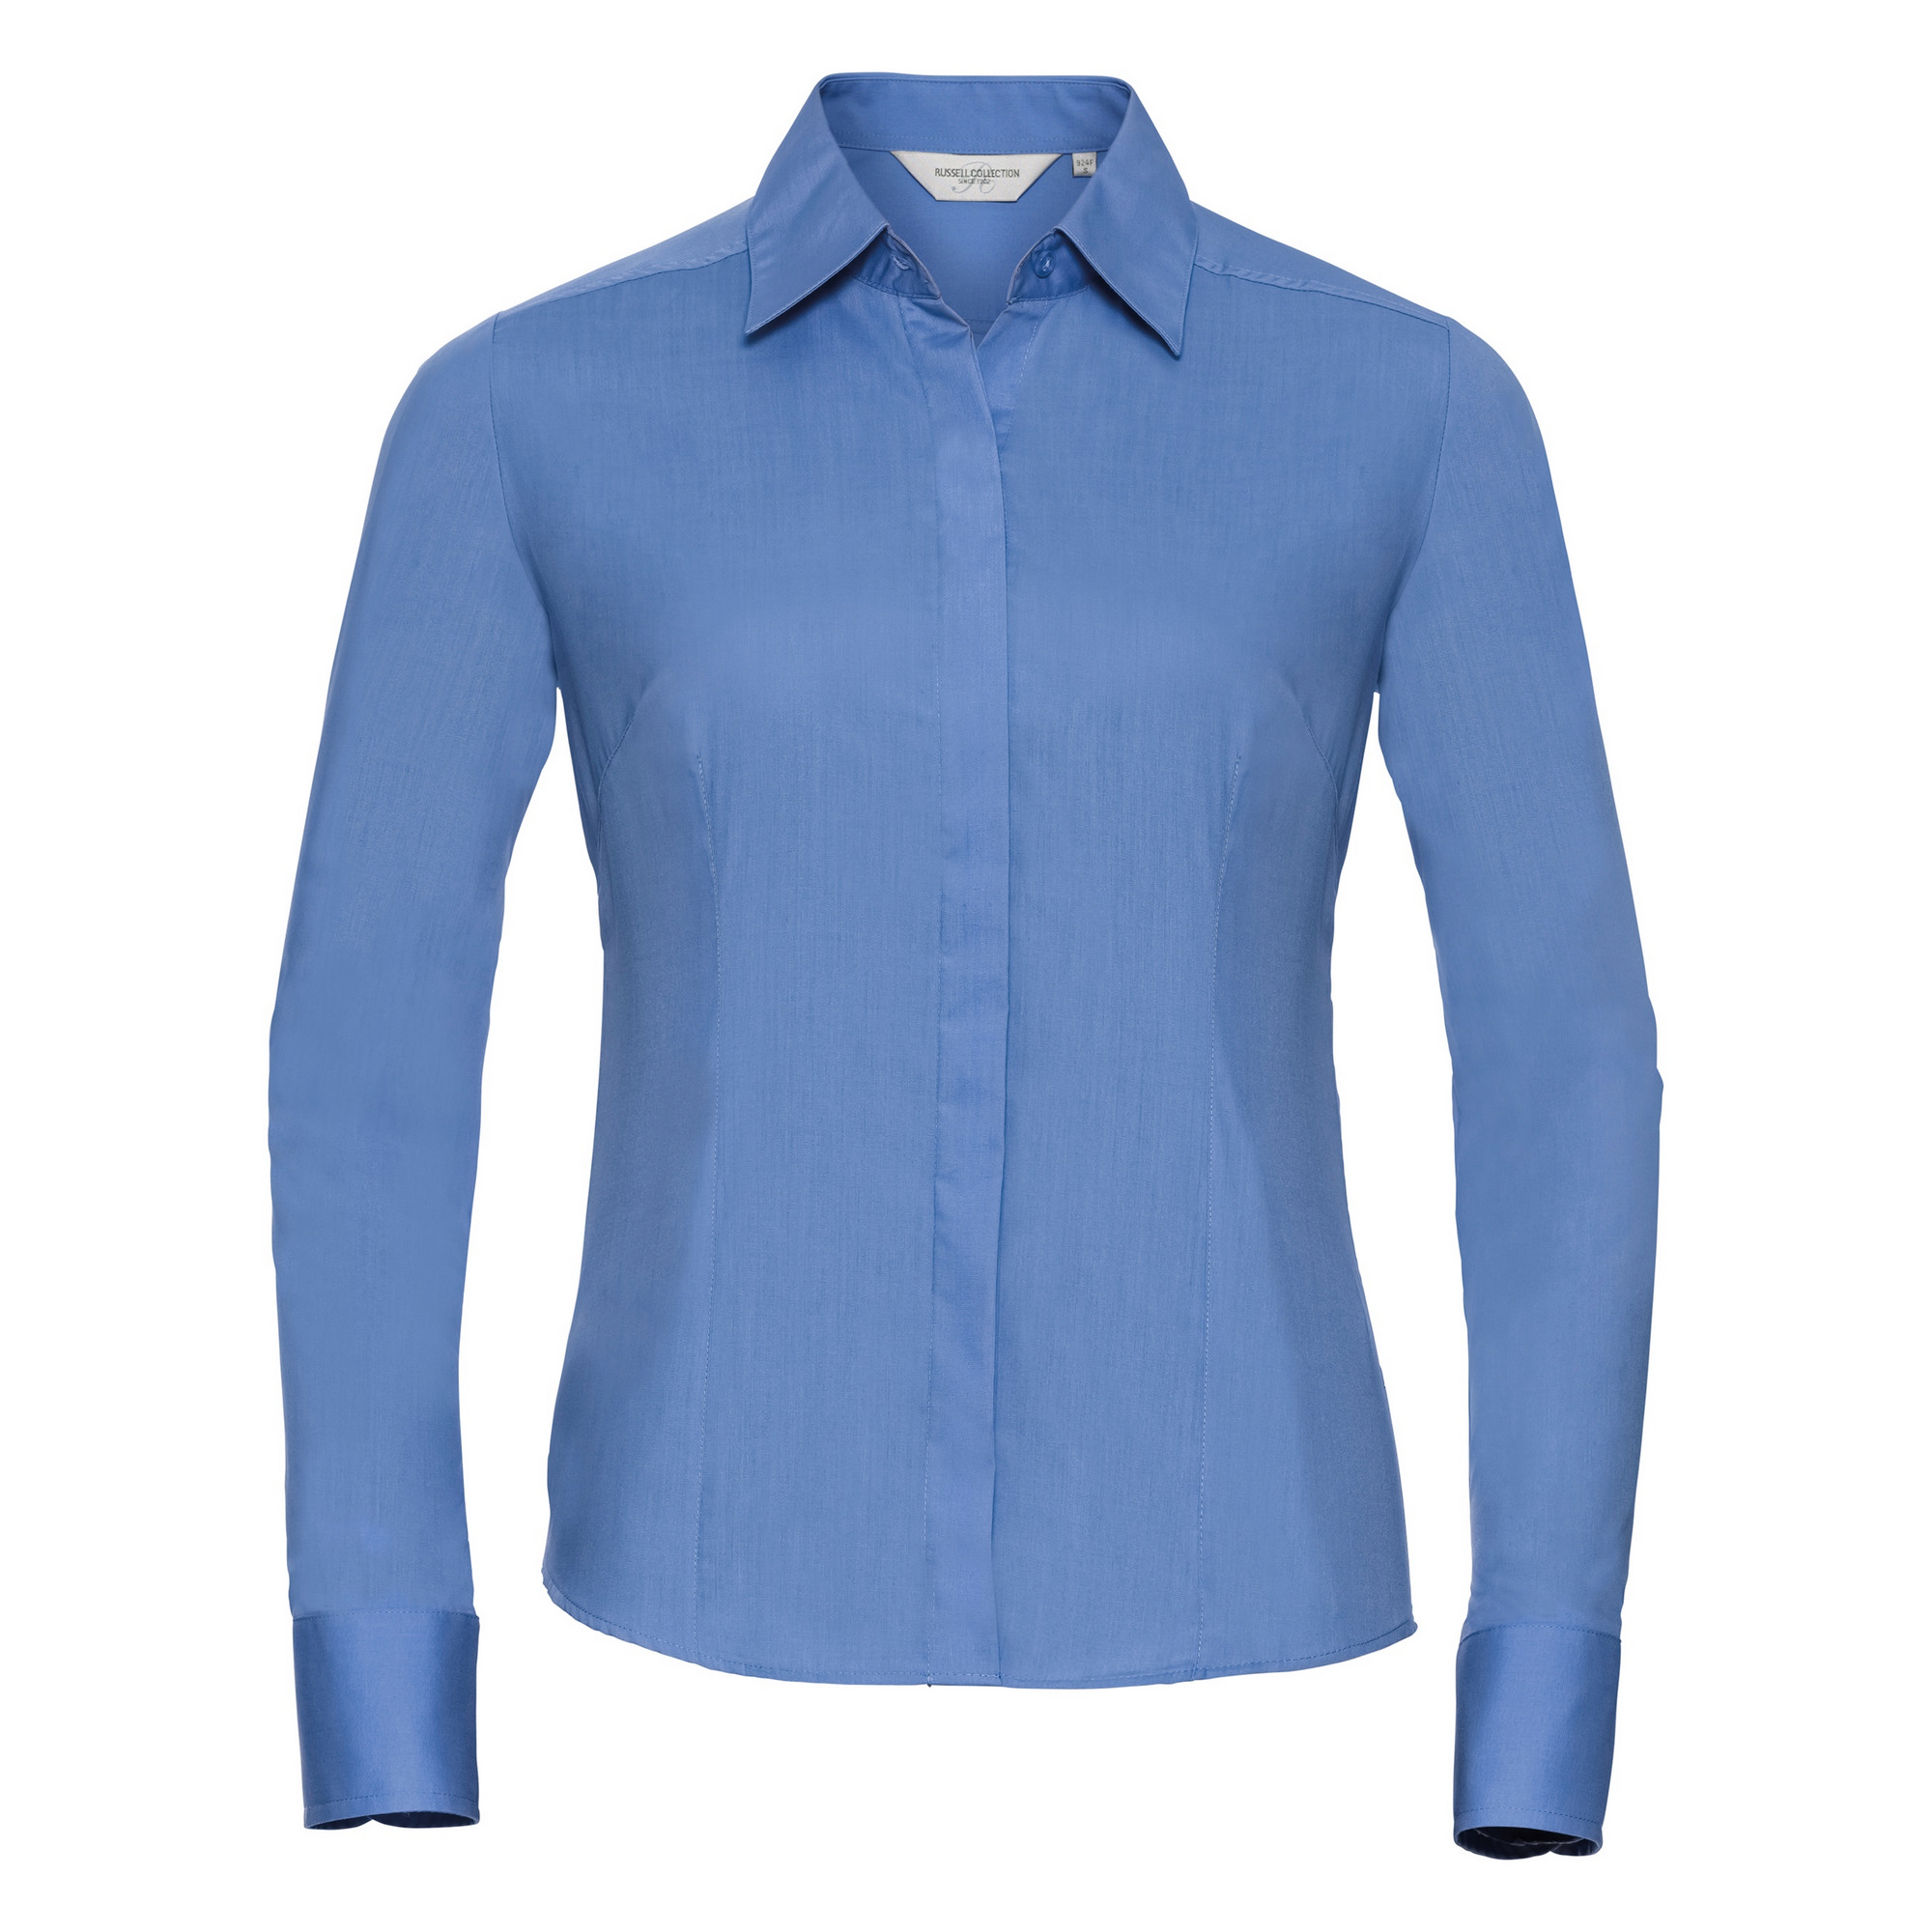 Russell Collection Ladies/Womens Long Sleeve Poly-Cotton Easy Care Fitted Poplin Shirt (S) (Corporate Blue)